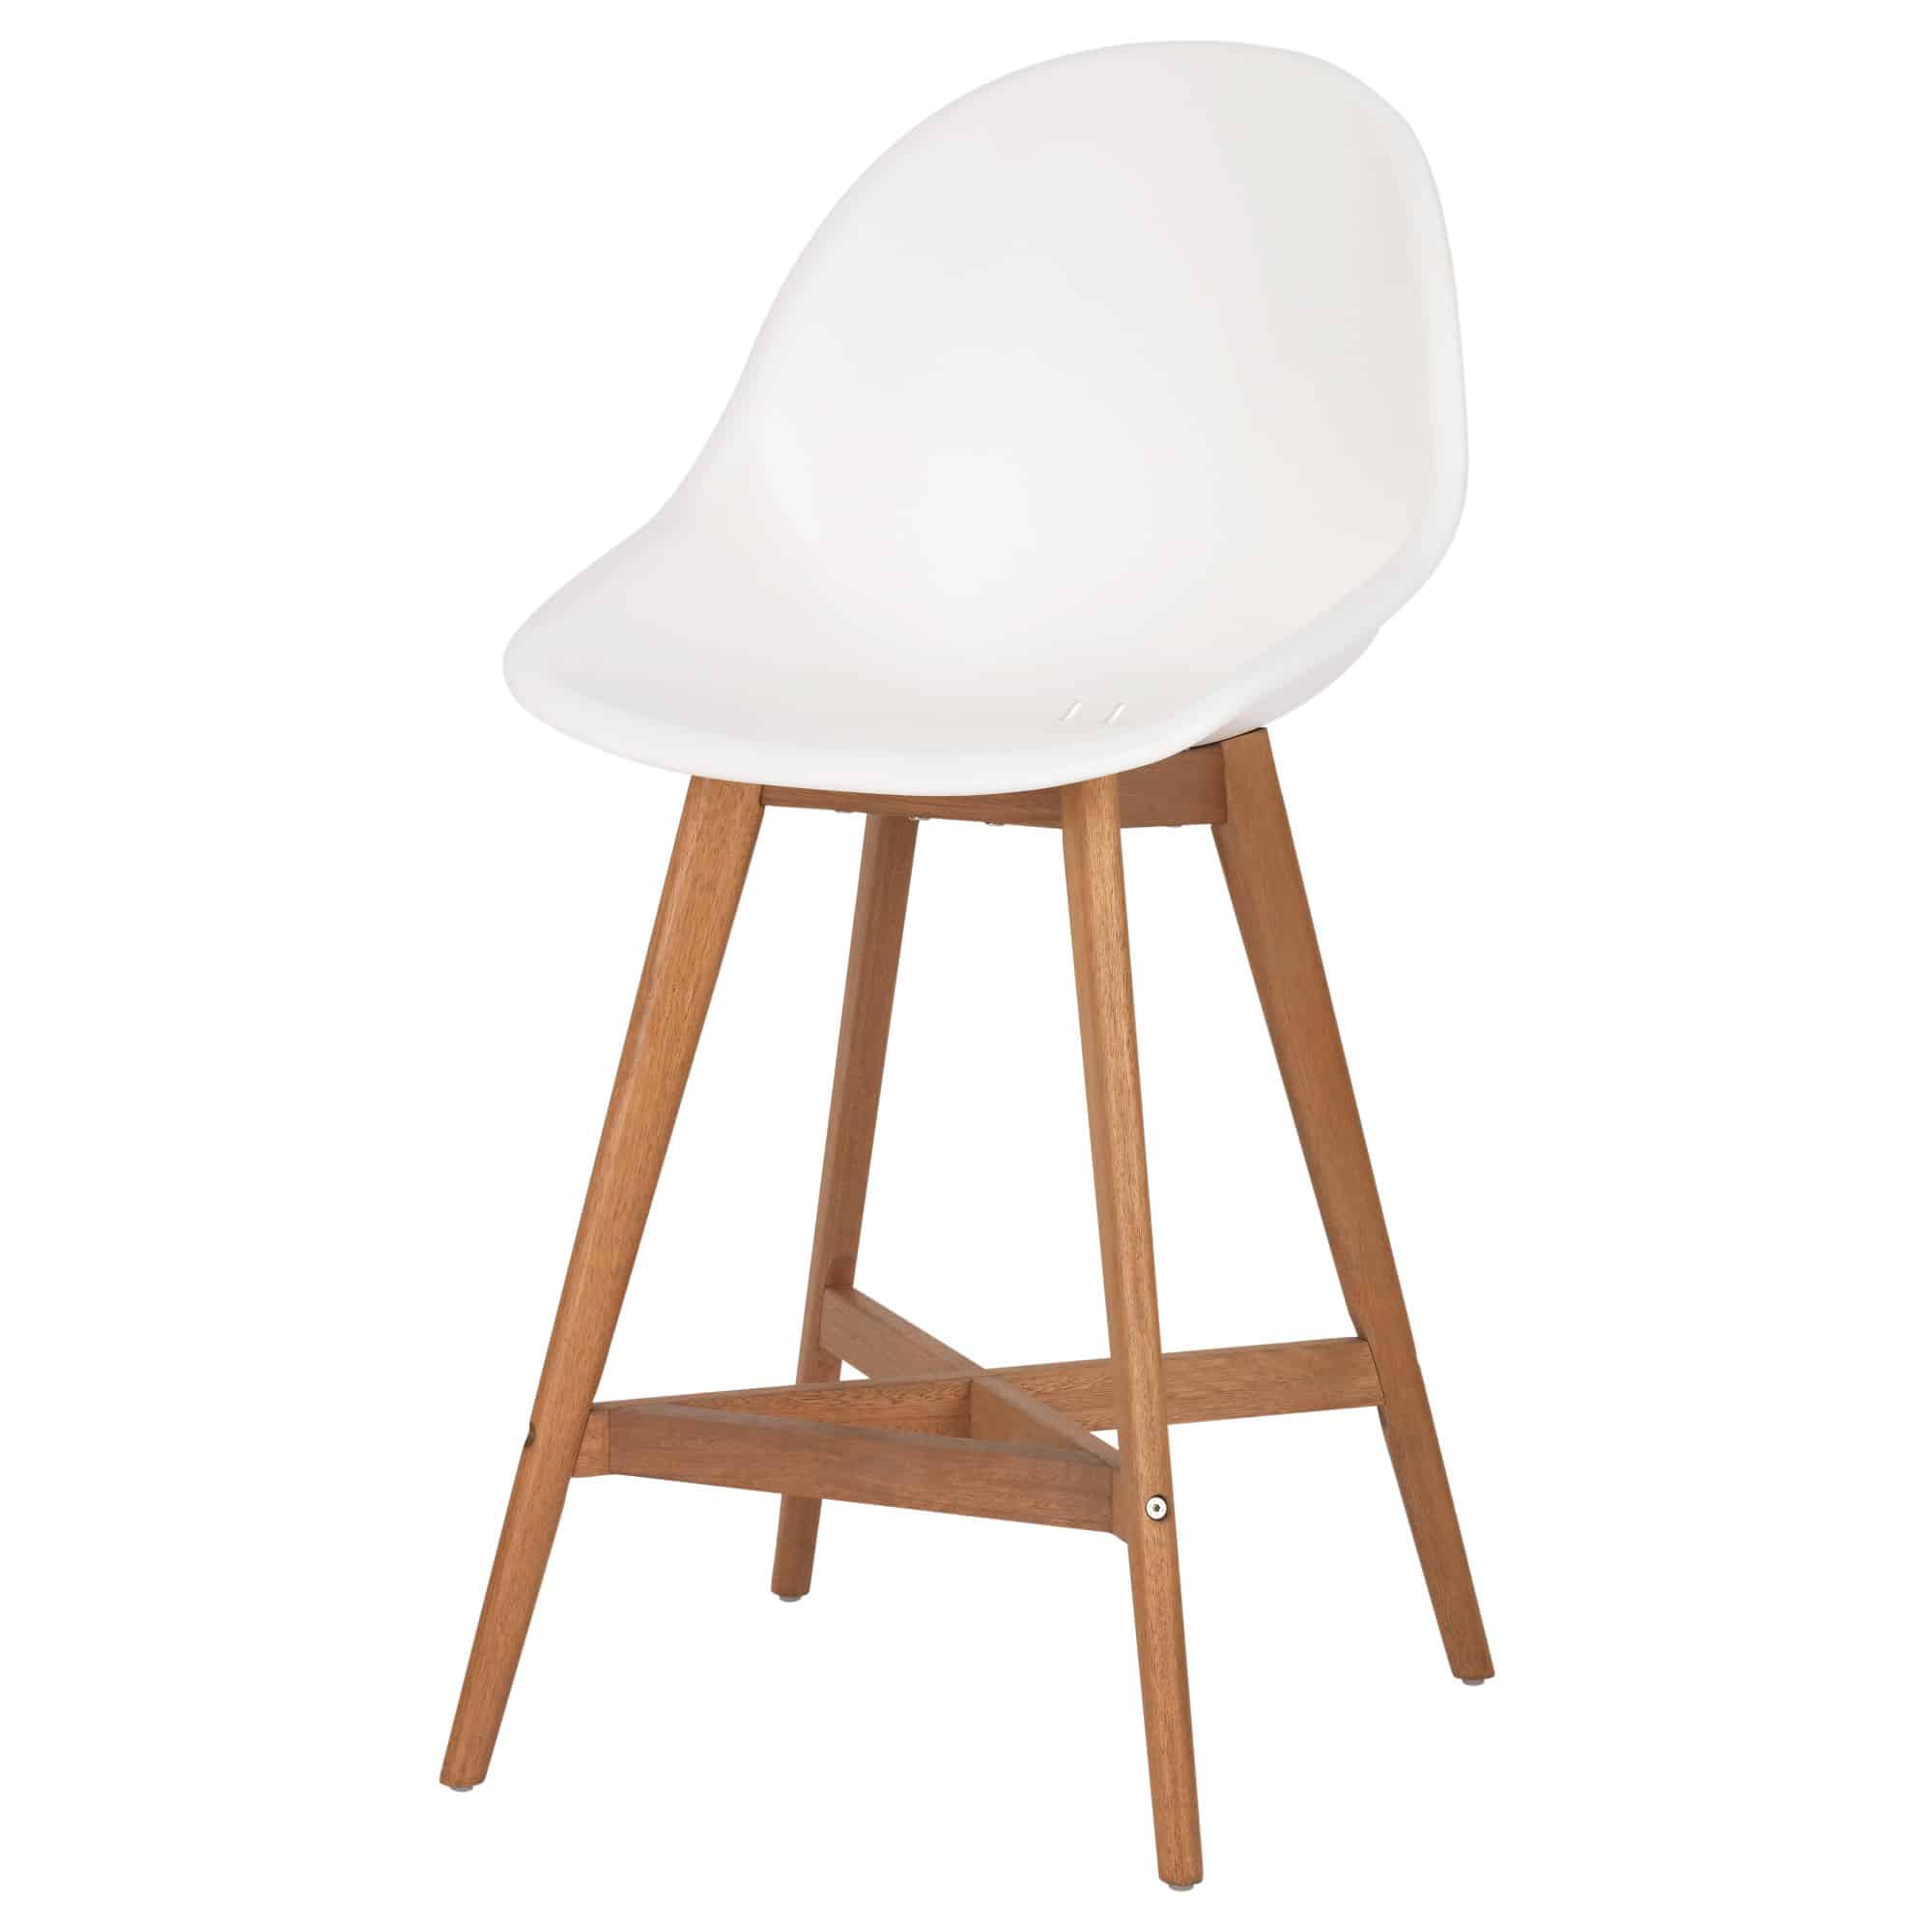 Fanbyn bar stool